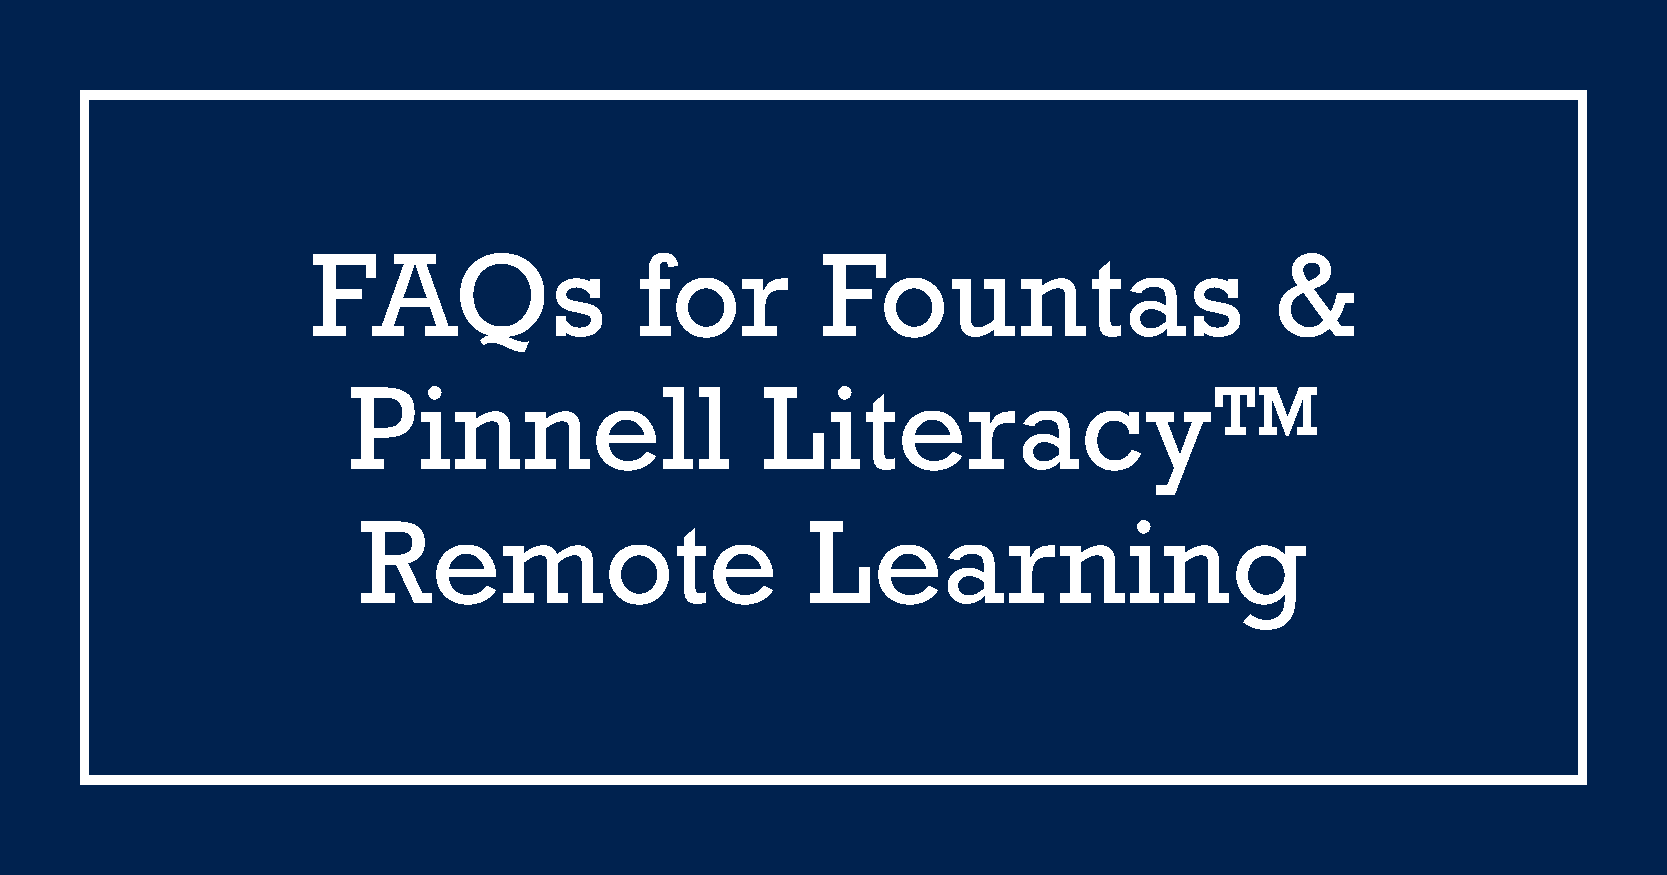 FP_Remote_Learning_FAQs_Blog_Graphic